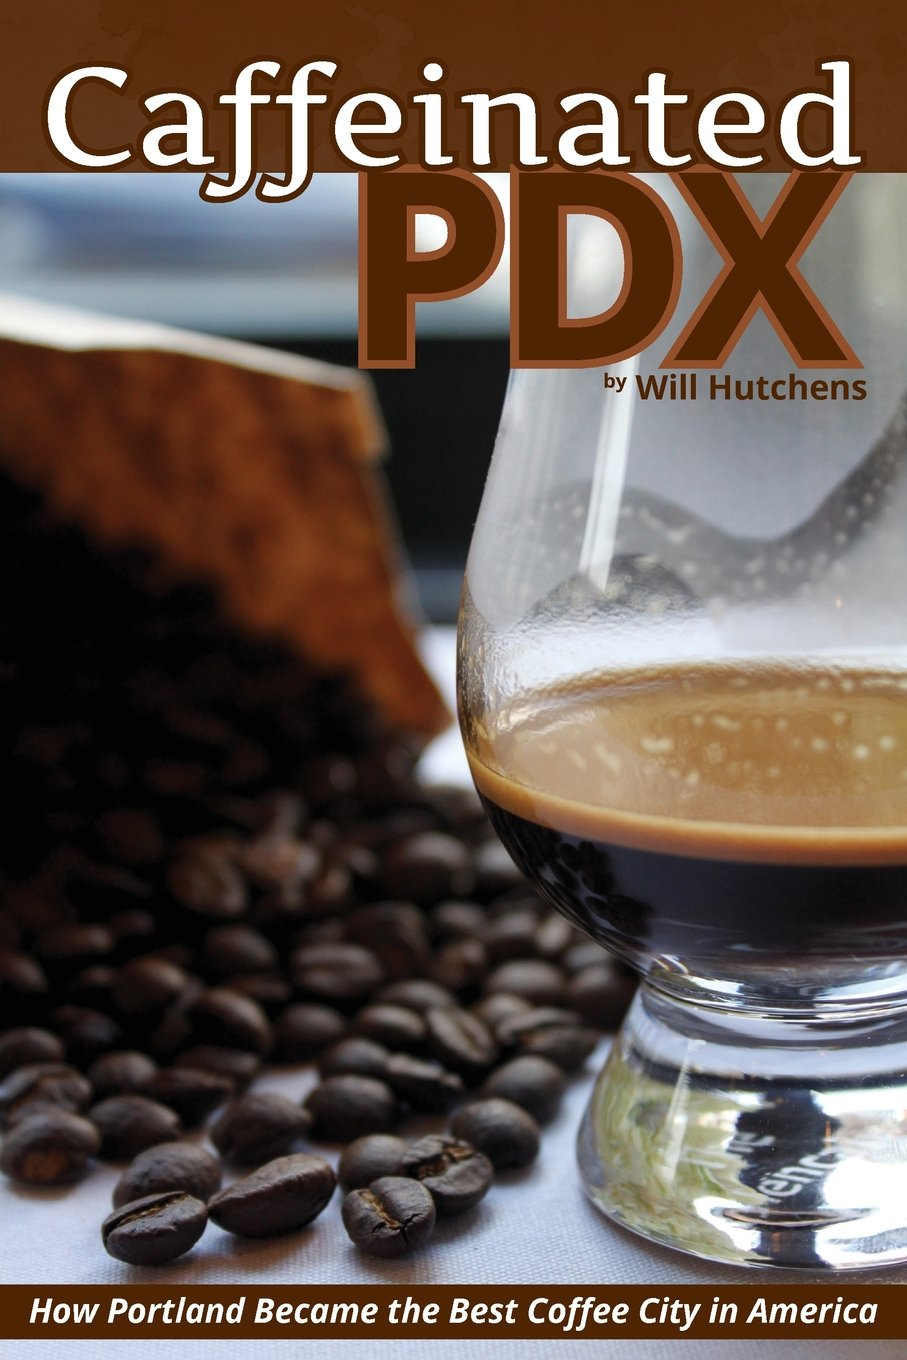 Caffeinated PDX: How Portland Became the Best Coffee City in America